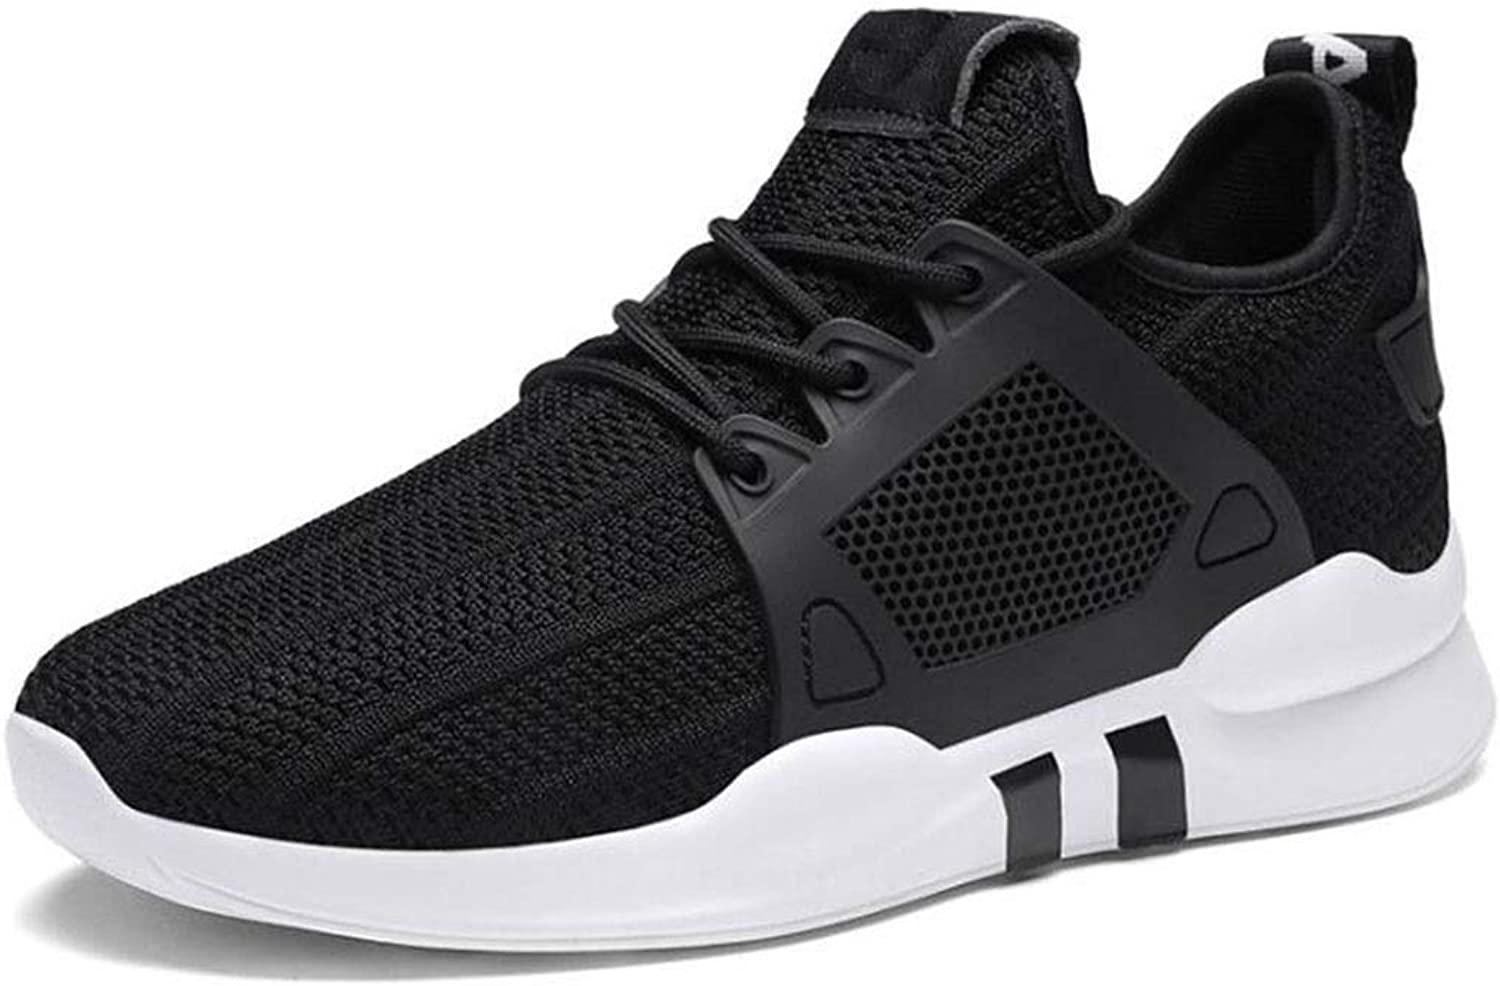 Women's Sneakers Women's Lightweight Casual Running SneakersYouth Girls Tennis shoes Women's Casual Walking shoes,Casual Mesh-Comfortable Work shoes (color   Black, Size   7 US)